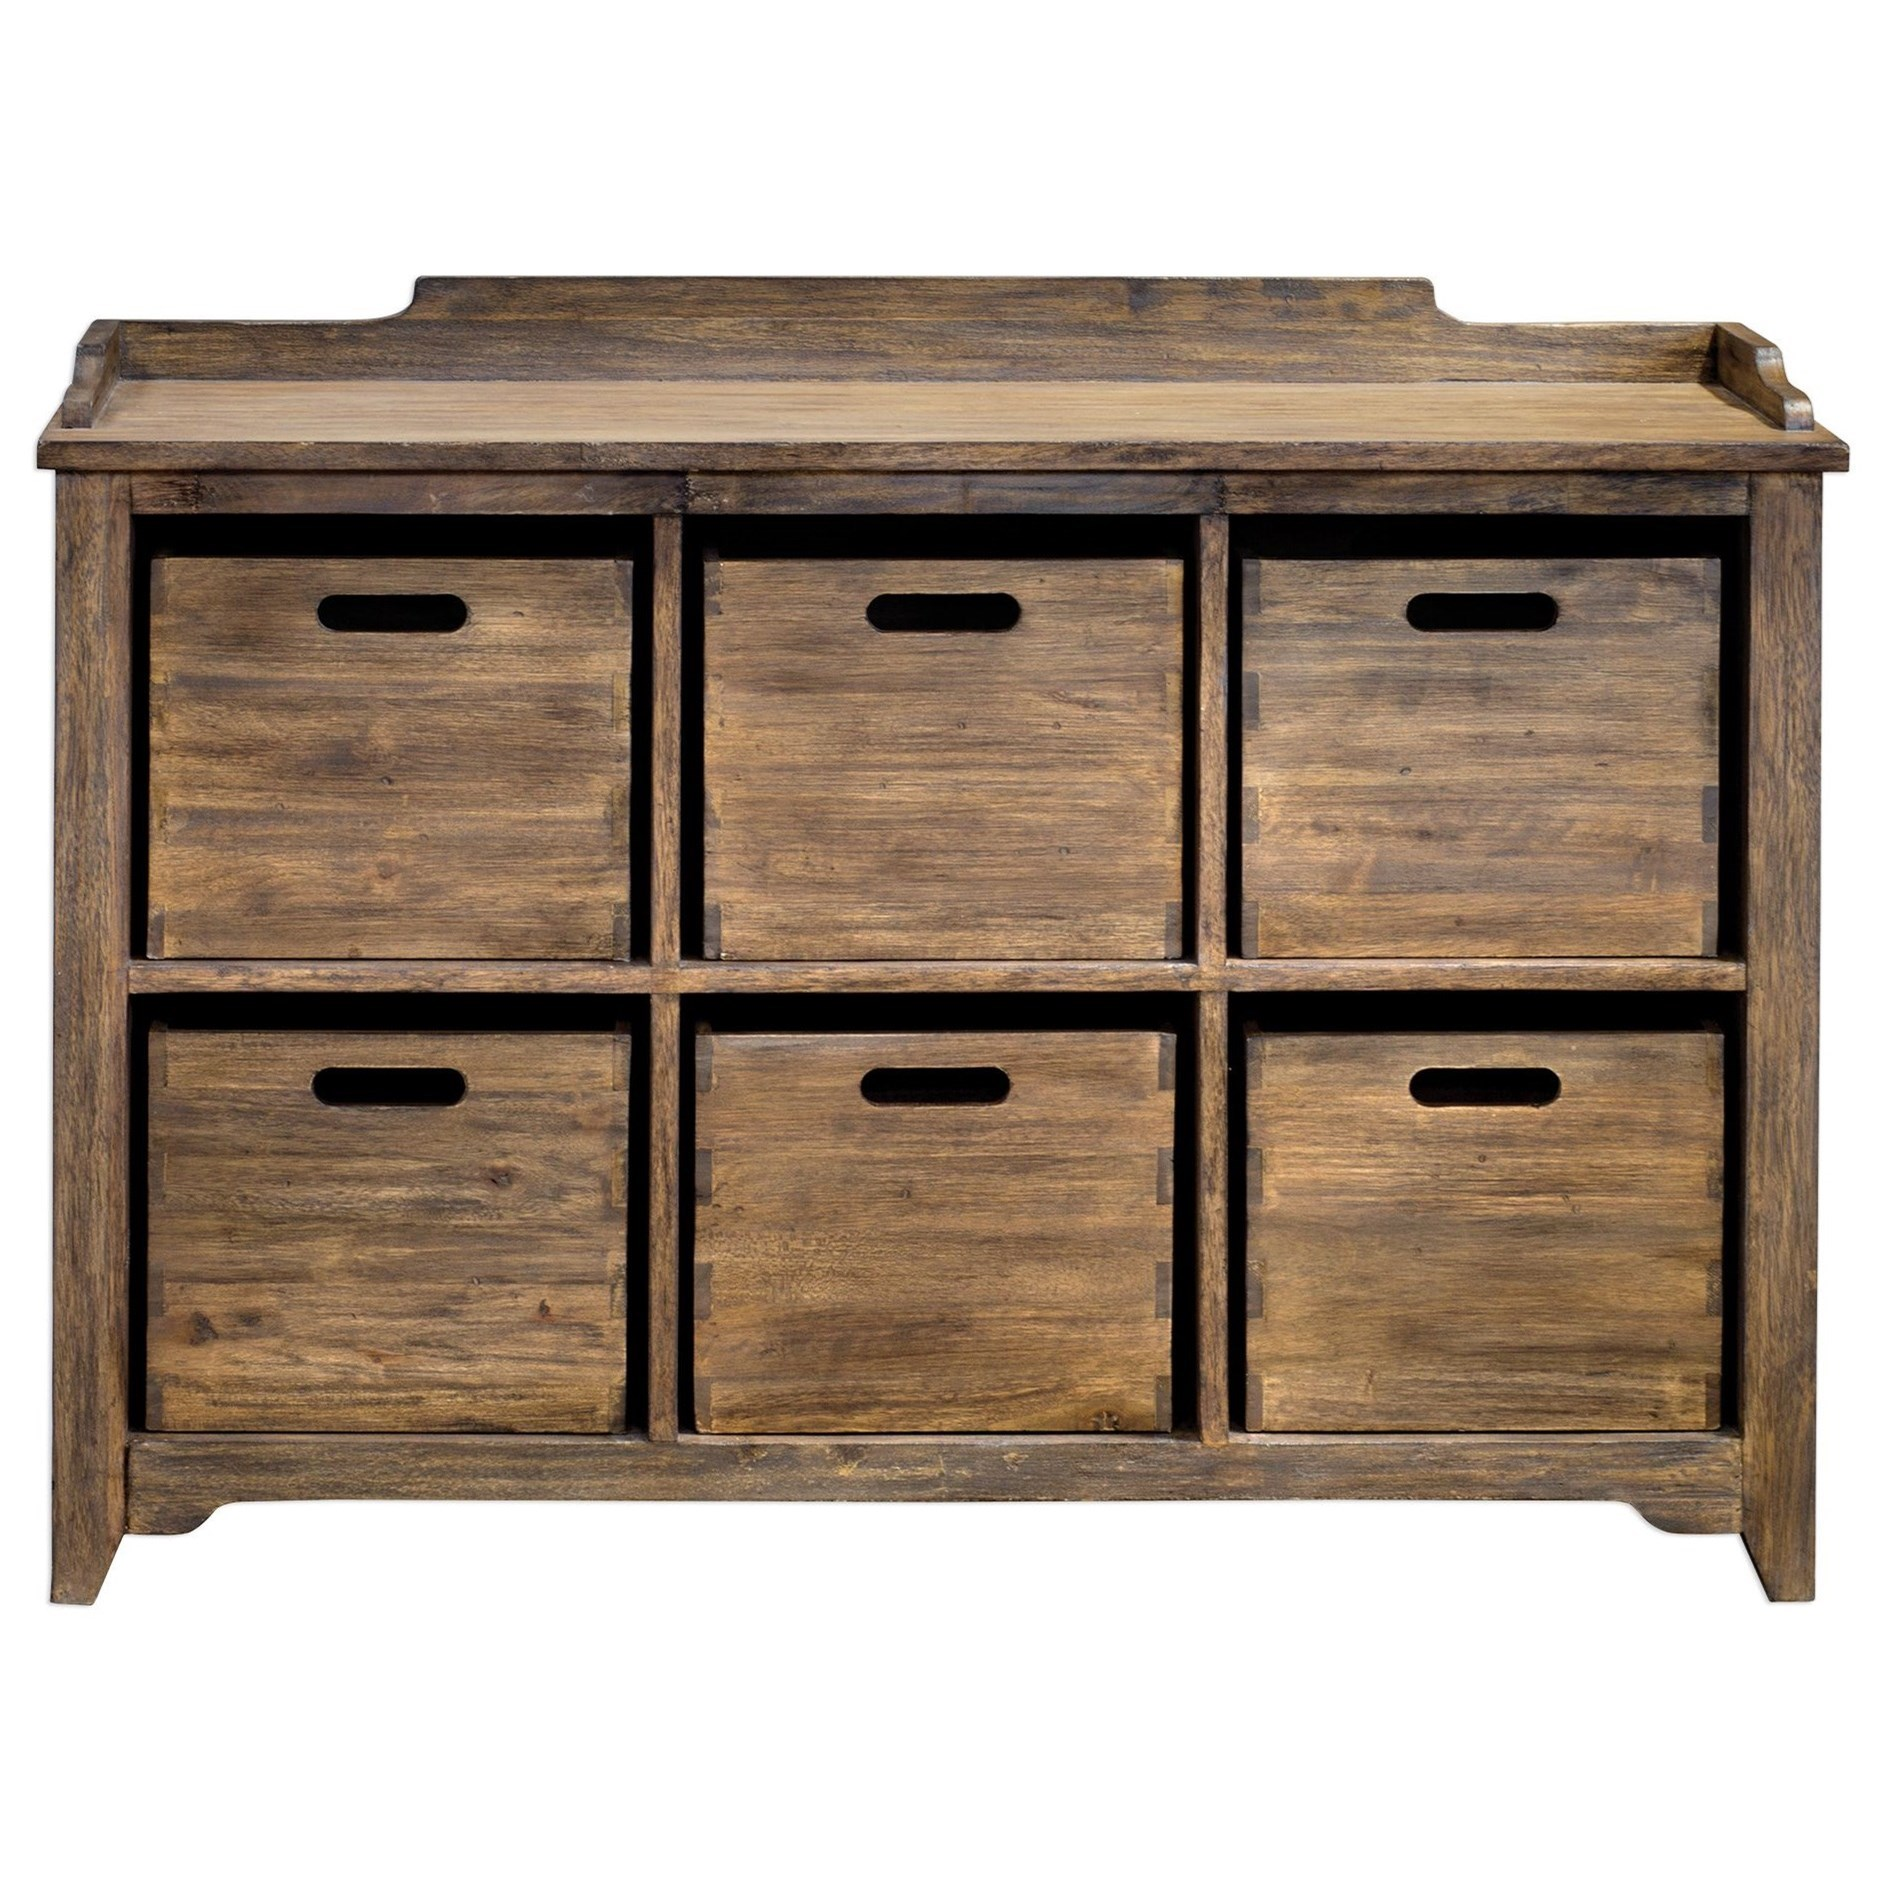 Accent Furniture - Chests Ardusin Driftwood Hobby Cupboard by Uttermost at Factory Direct Furniture